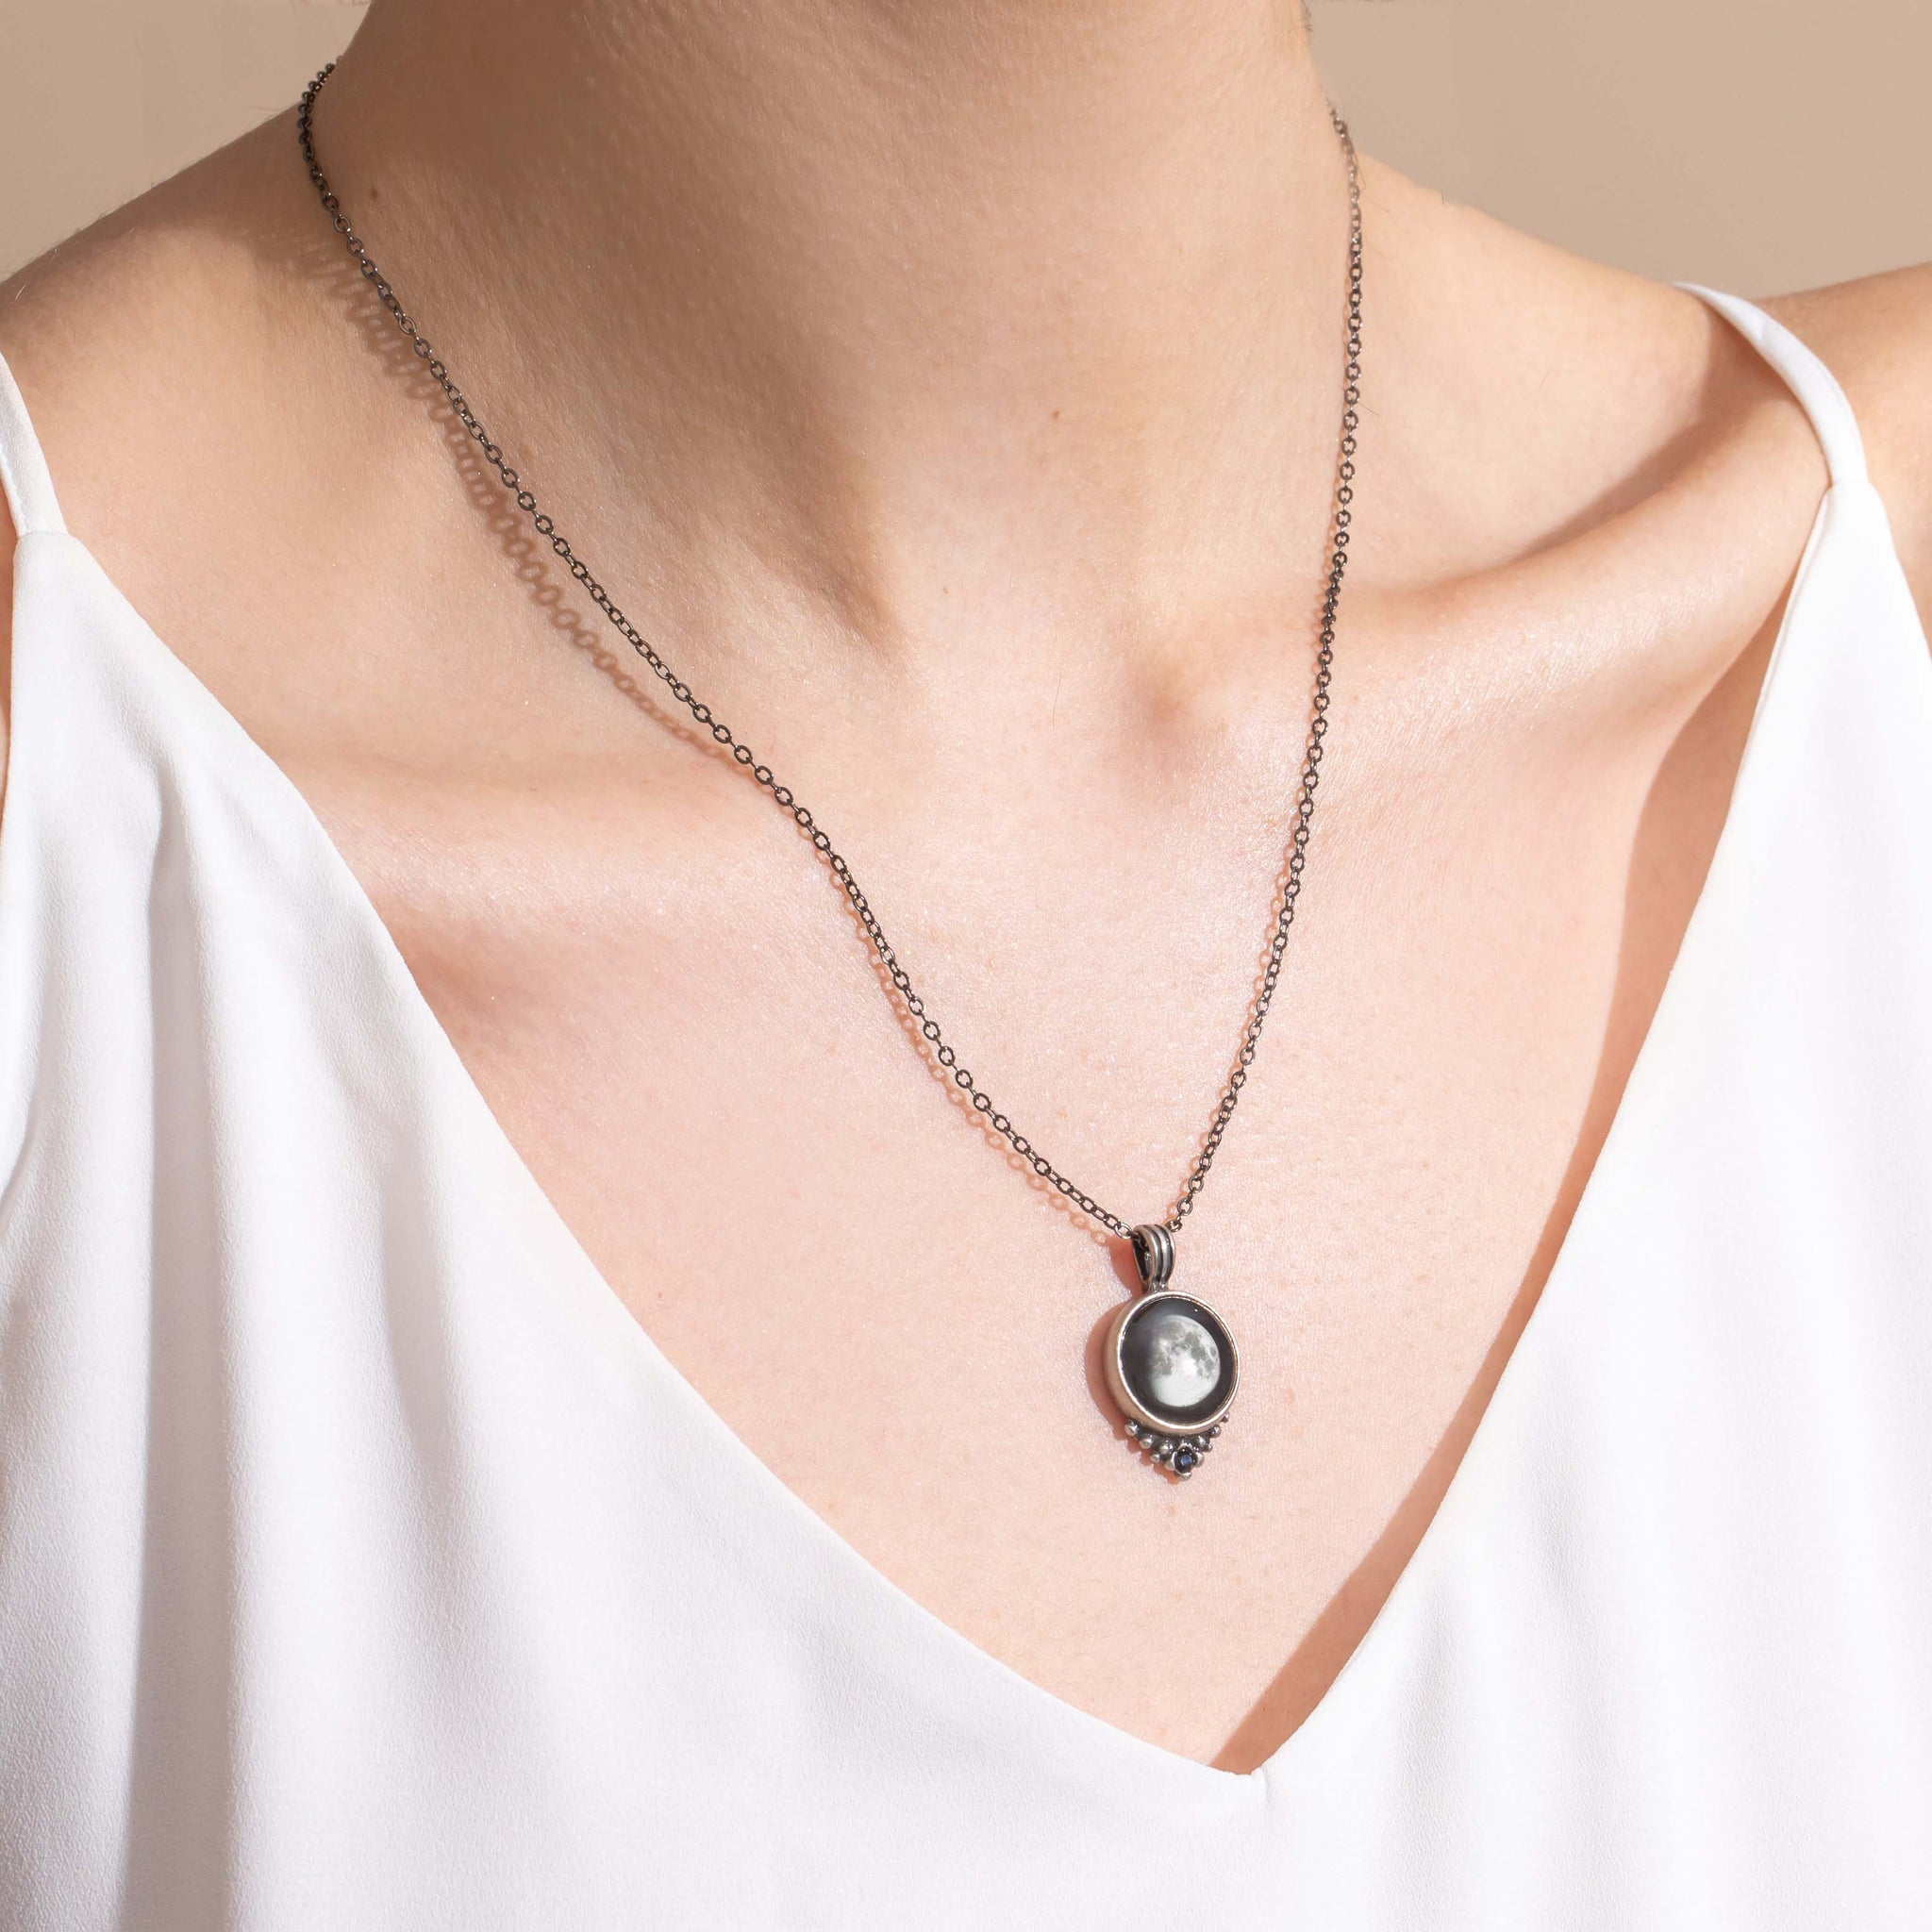 Classic Moonglow Necklace with Black Crystal